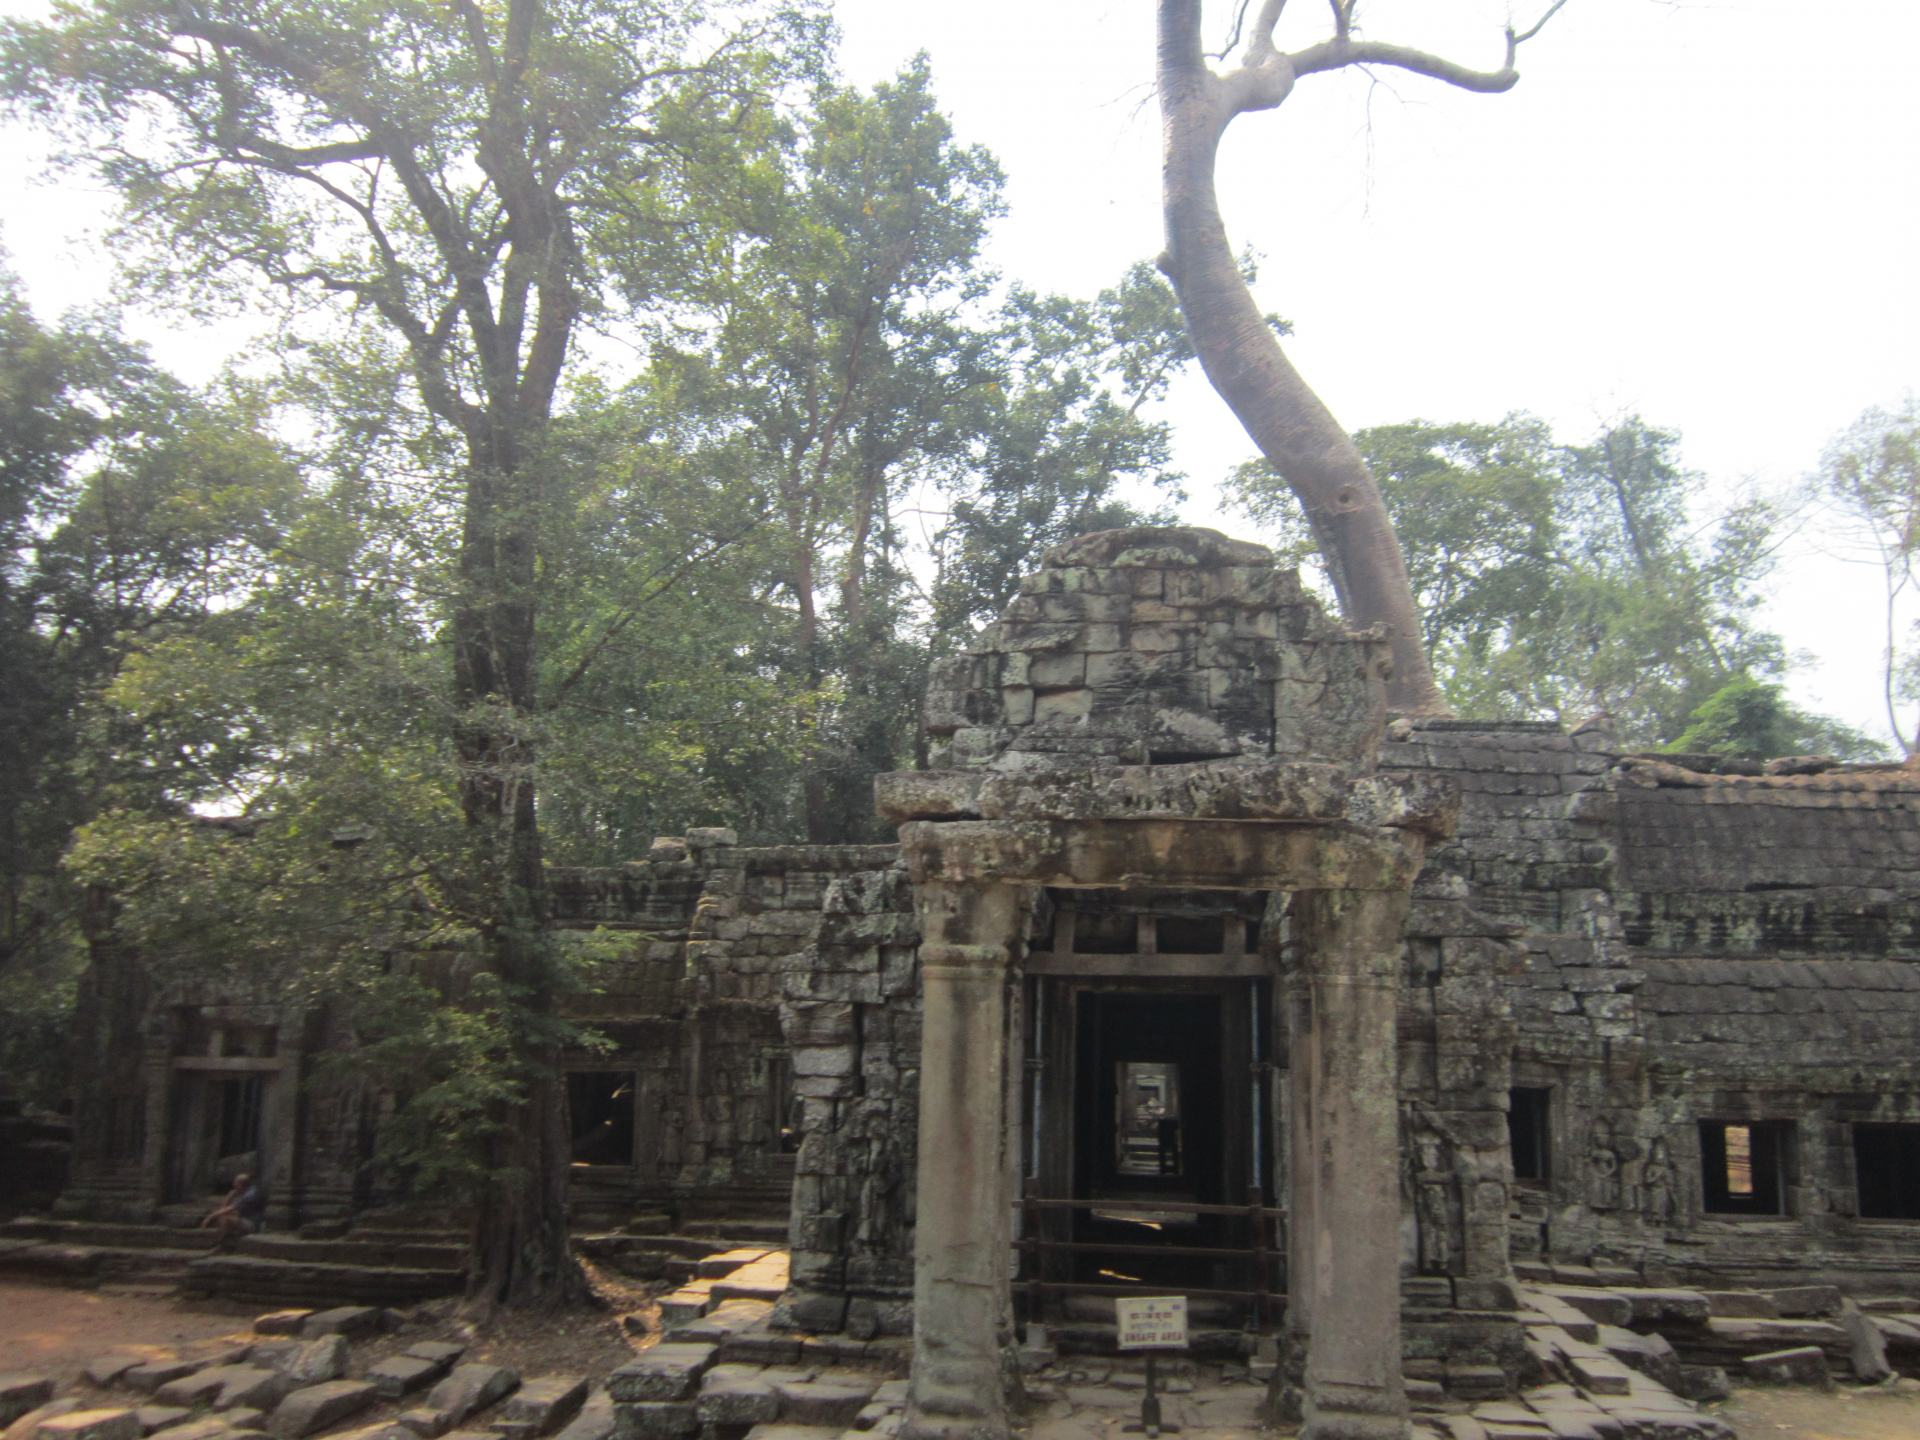 Some of the ruins of Ta Prohm, showing an doorway entrance and tree's growing around the walls. Ta Prohm is one of the best temples to see when following this Cambodia Itinerary.